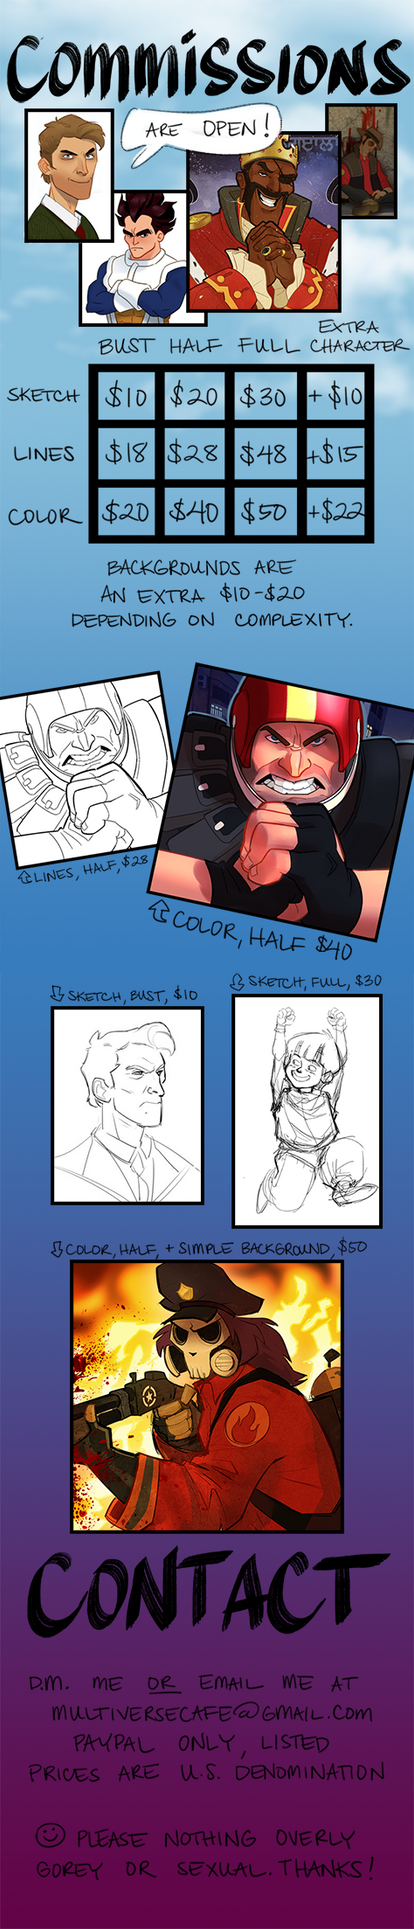 Commission Info by MultiverseCafe